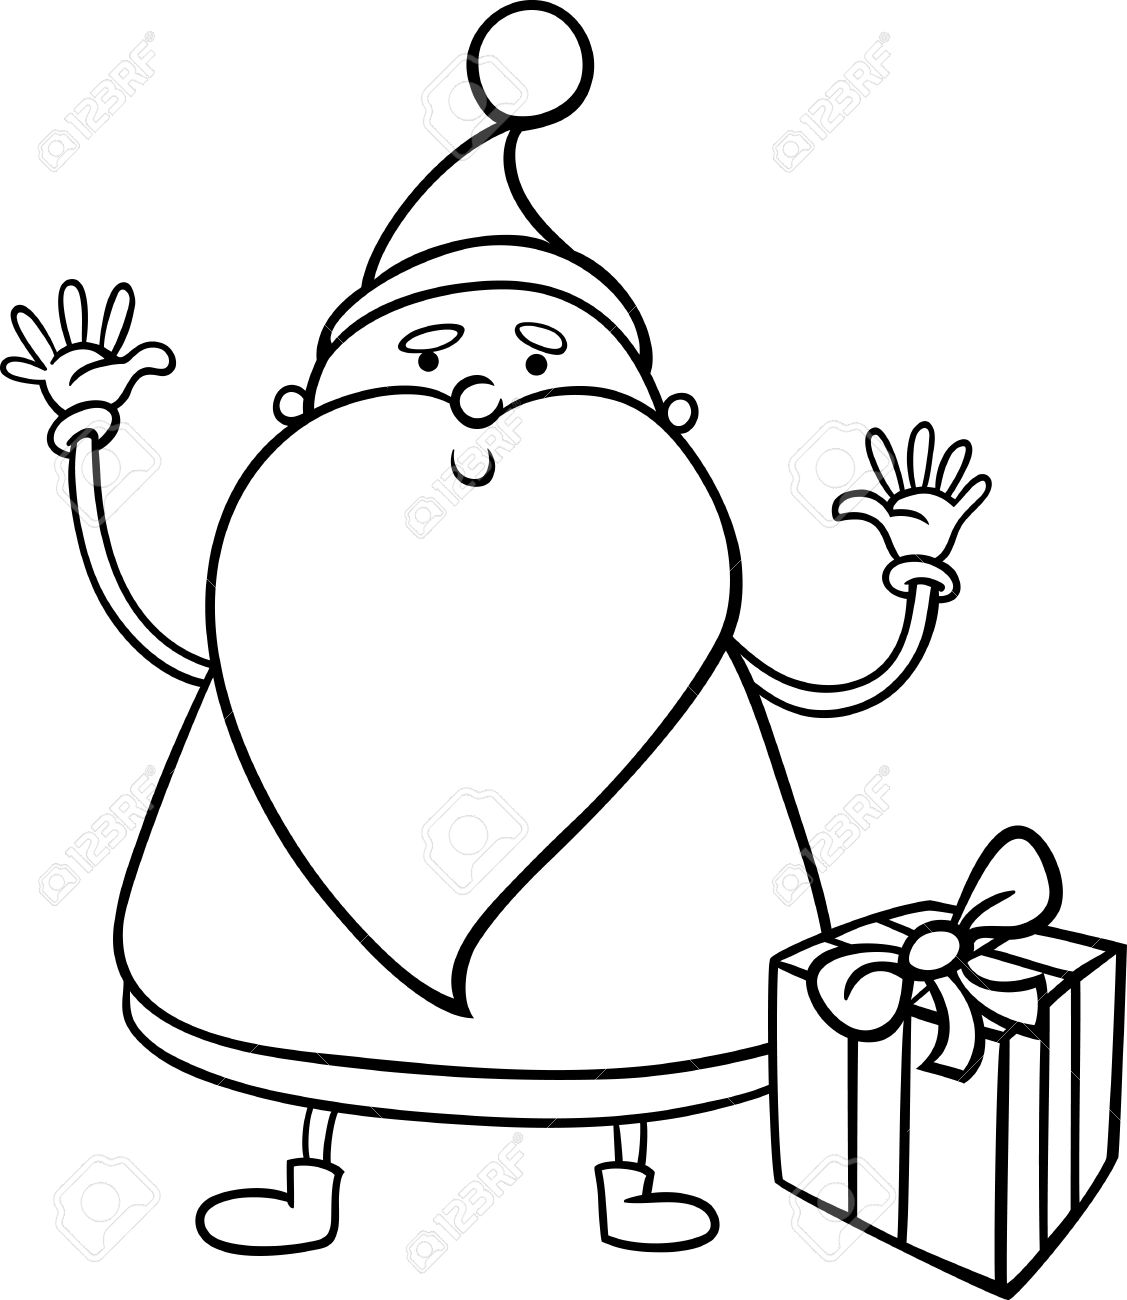 Black And White Cartoon Illustration Of Cute Santa Claus Christmas